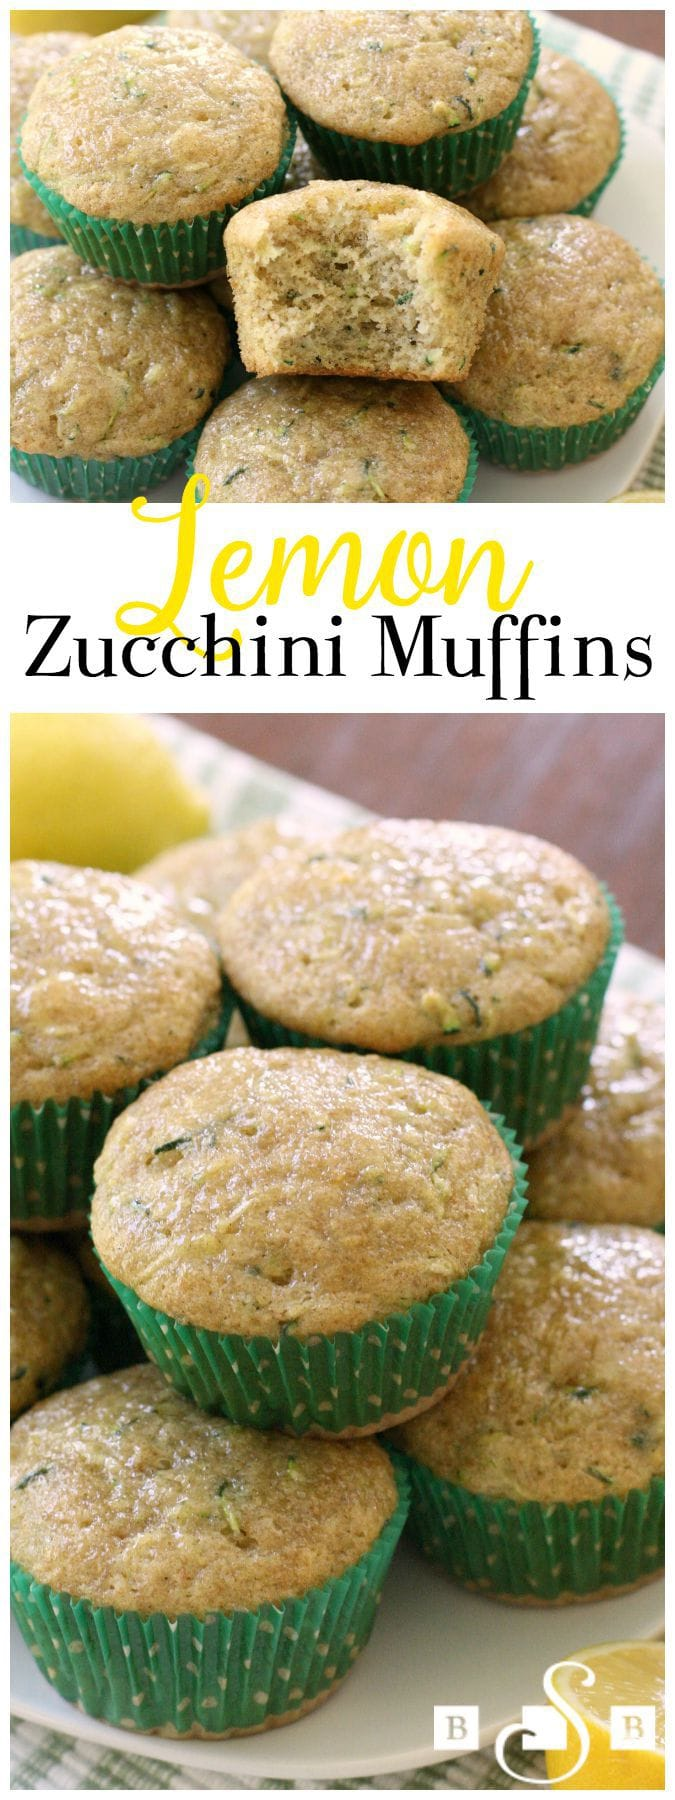 Lemon Zucchini Muffins are a favorite when the garden is bursting with fresh zucchini! More delicate than zucchini bread, you'll love the fresh, bright flavor of added lemon and cinnamon too.